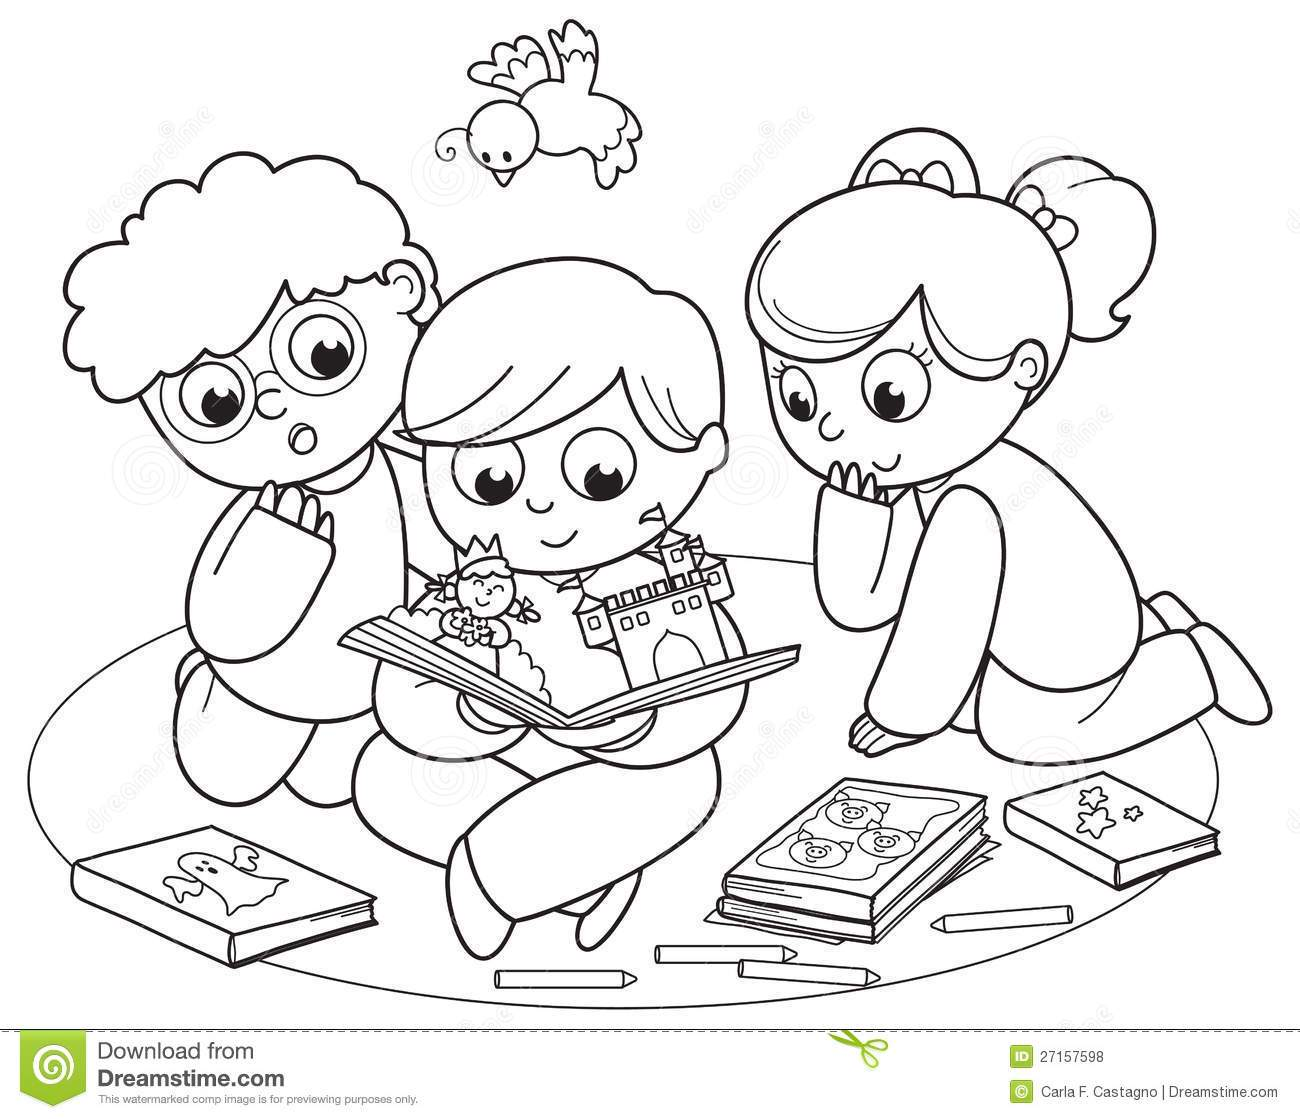 Black and whitekids reading clipart graphic black and white library Kids reading clipart black and white 3 » Clipart Portal graphic black and white library